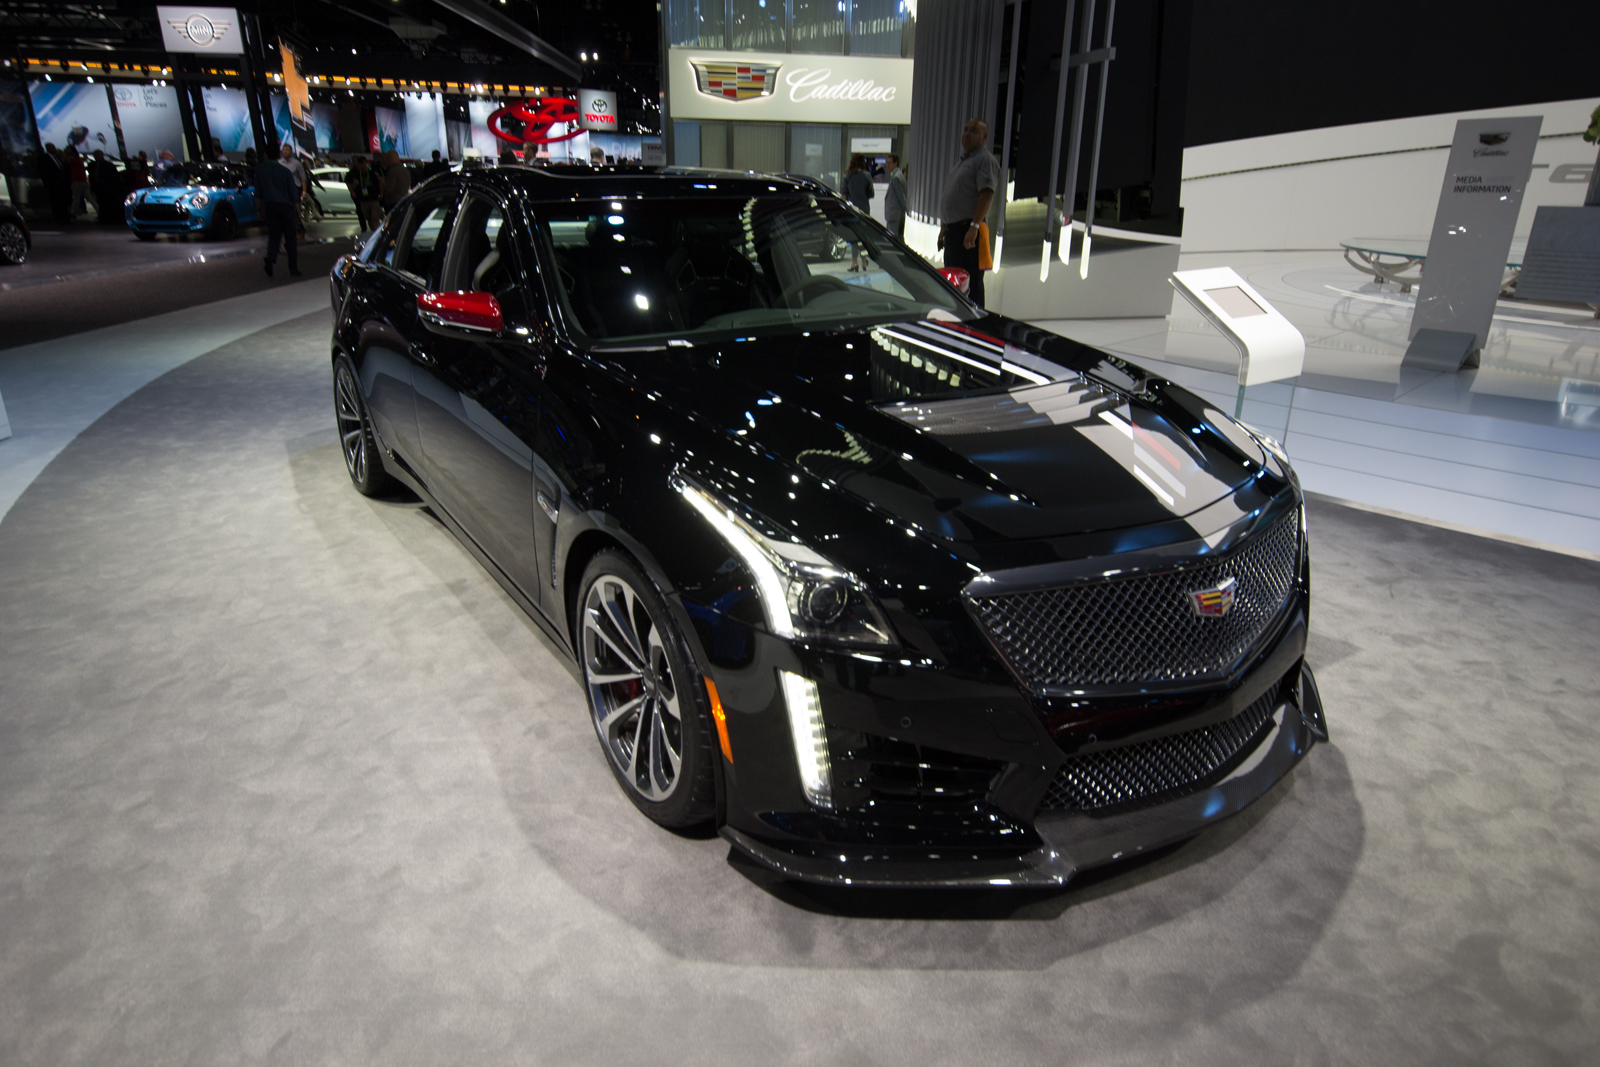 Cadillac CTS-V IMSA Championship Edition Found Loitering at the LA Auto Show - GM Inside News